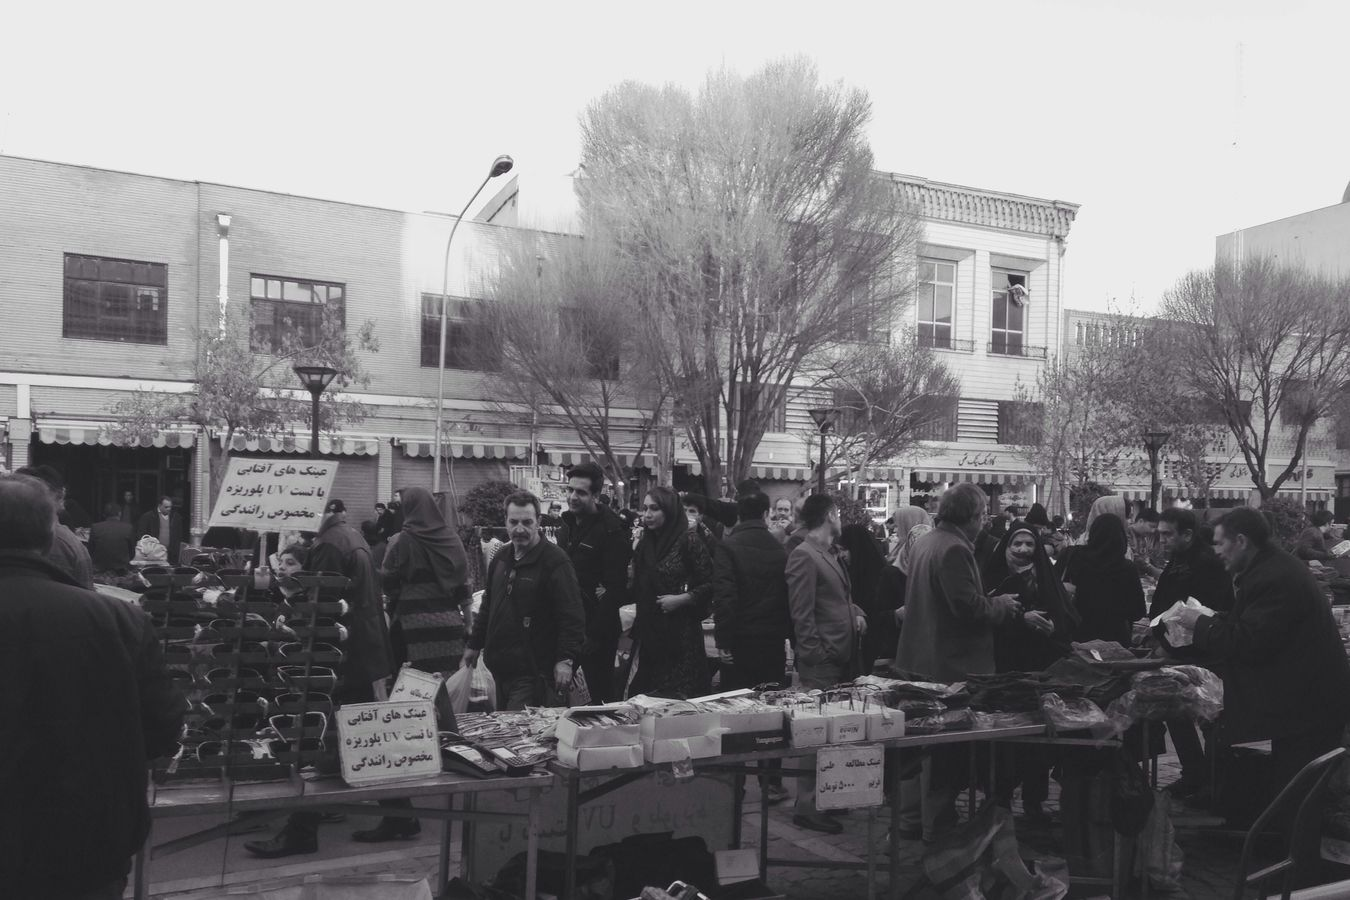 Large Group Of People People Outdoors Market Outdoor Street Photography Streetphoto_bw Urban Exploration Black And White Outdoors Capture The Moment Moments Of Life IPhone Photography Tehran, Iran 🤽🏼‍♀️